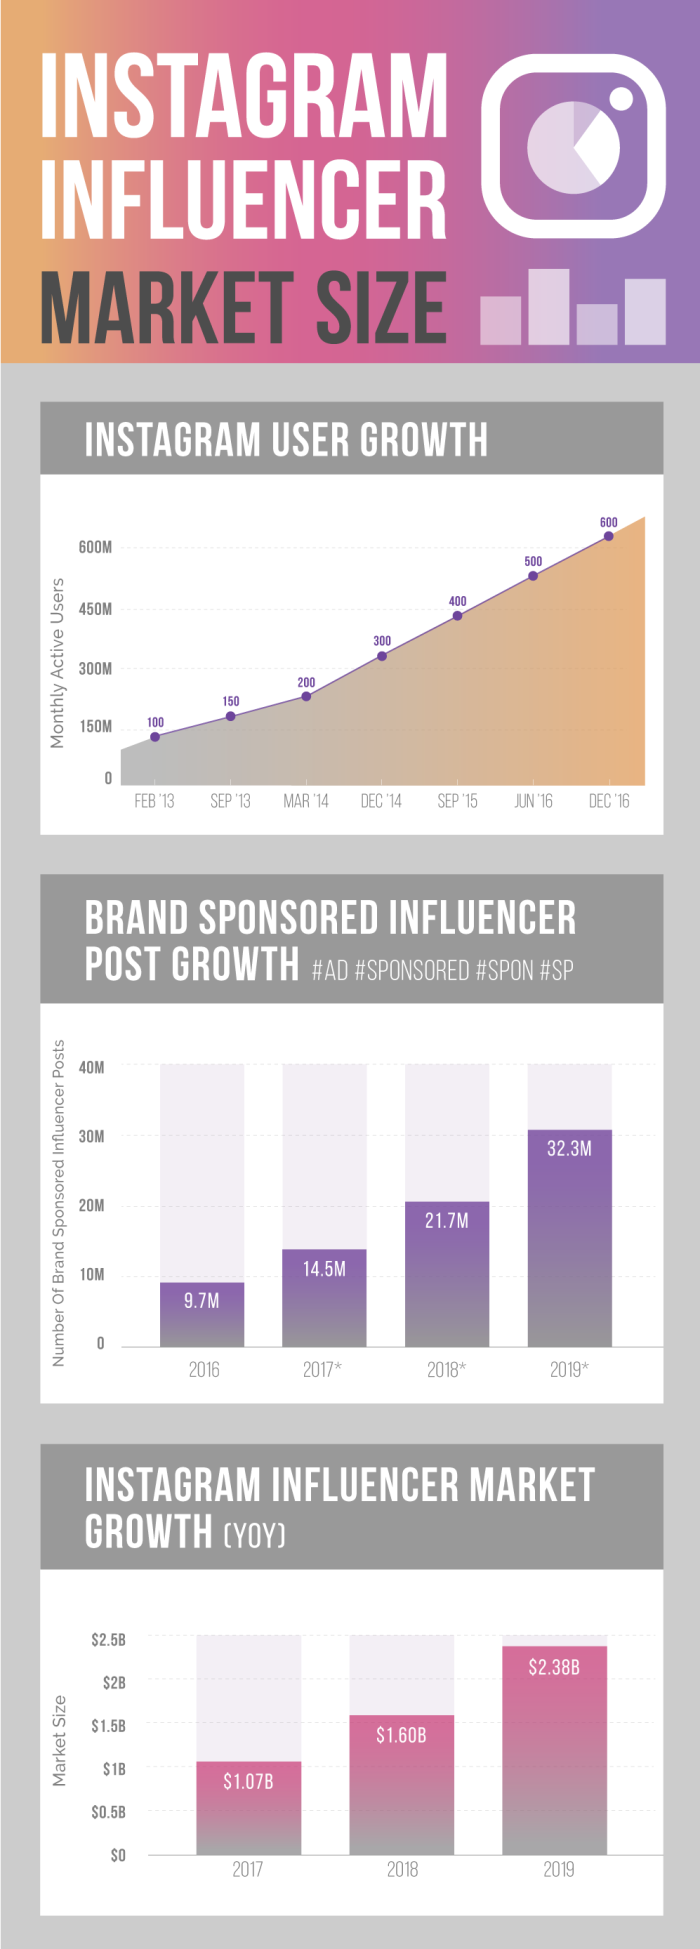 Instagram-Influencer-Marketing-Infographic-Industry-Market-Size